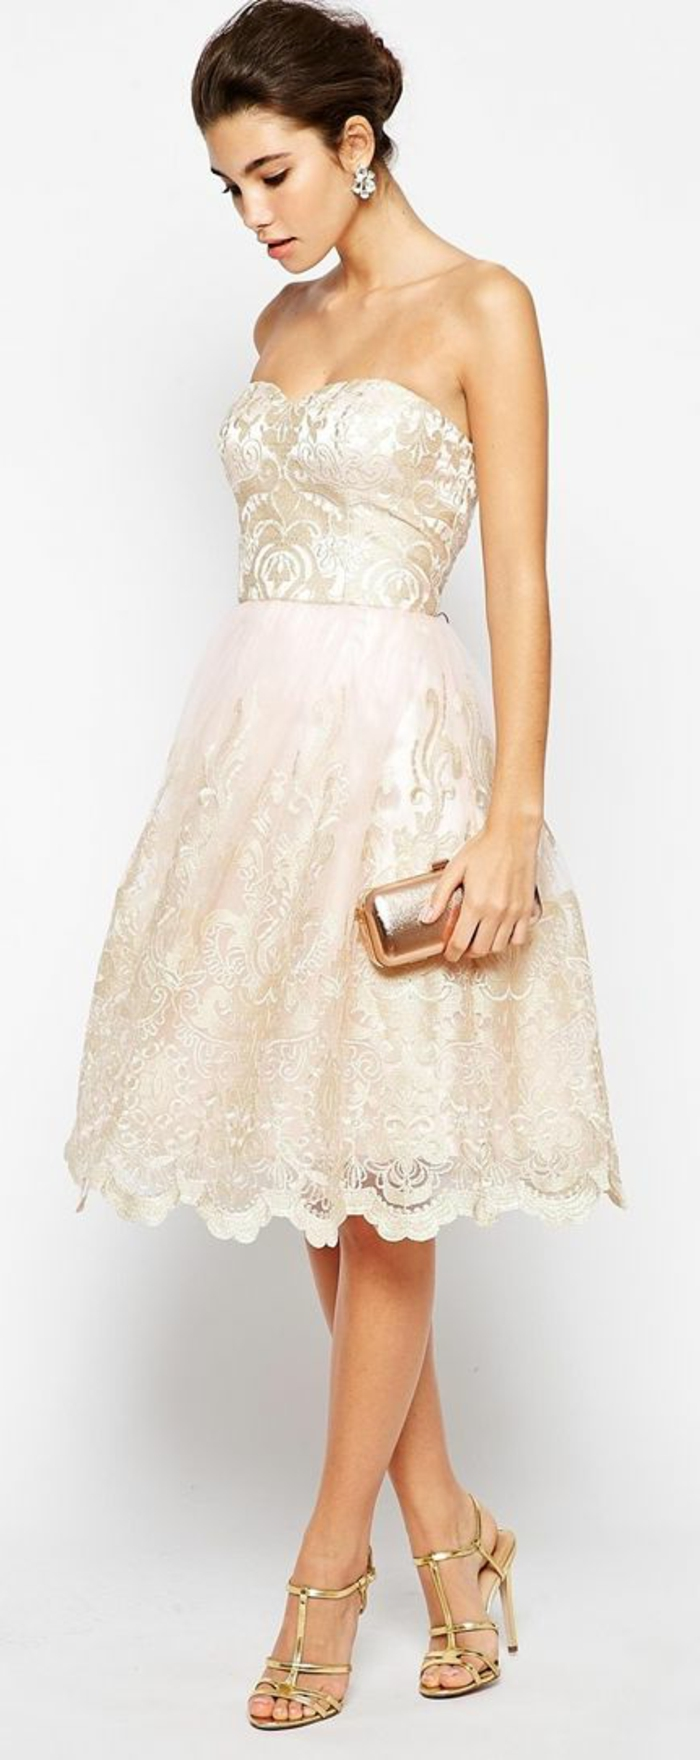 Robe-témoin-marriage-courte-beige-doree-sandales